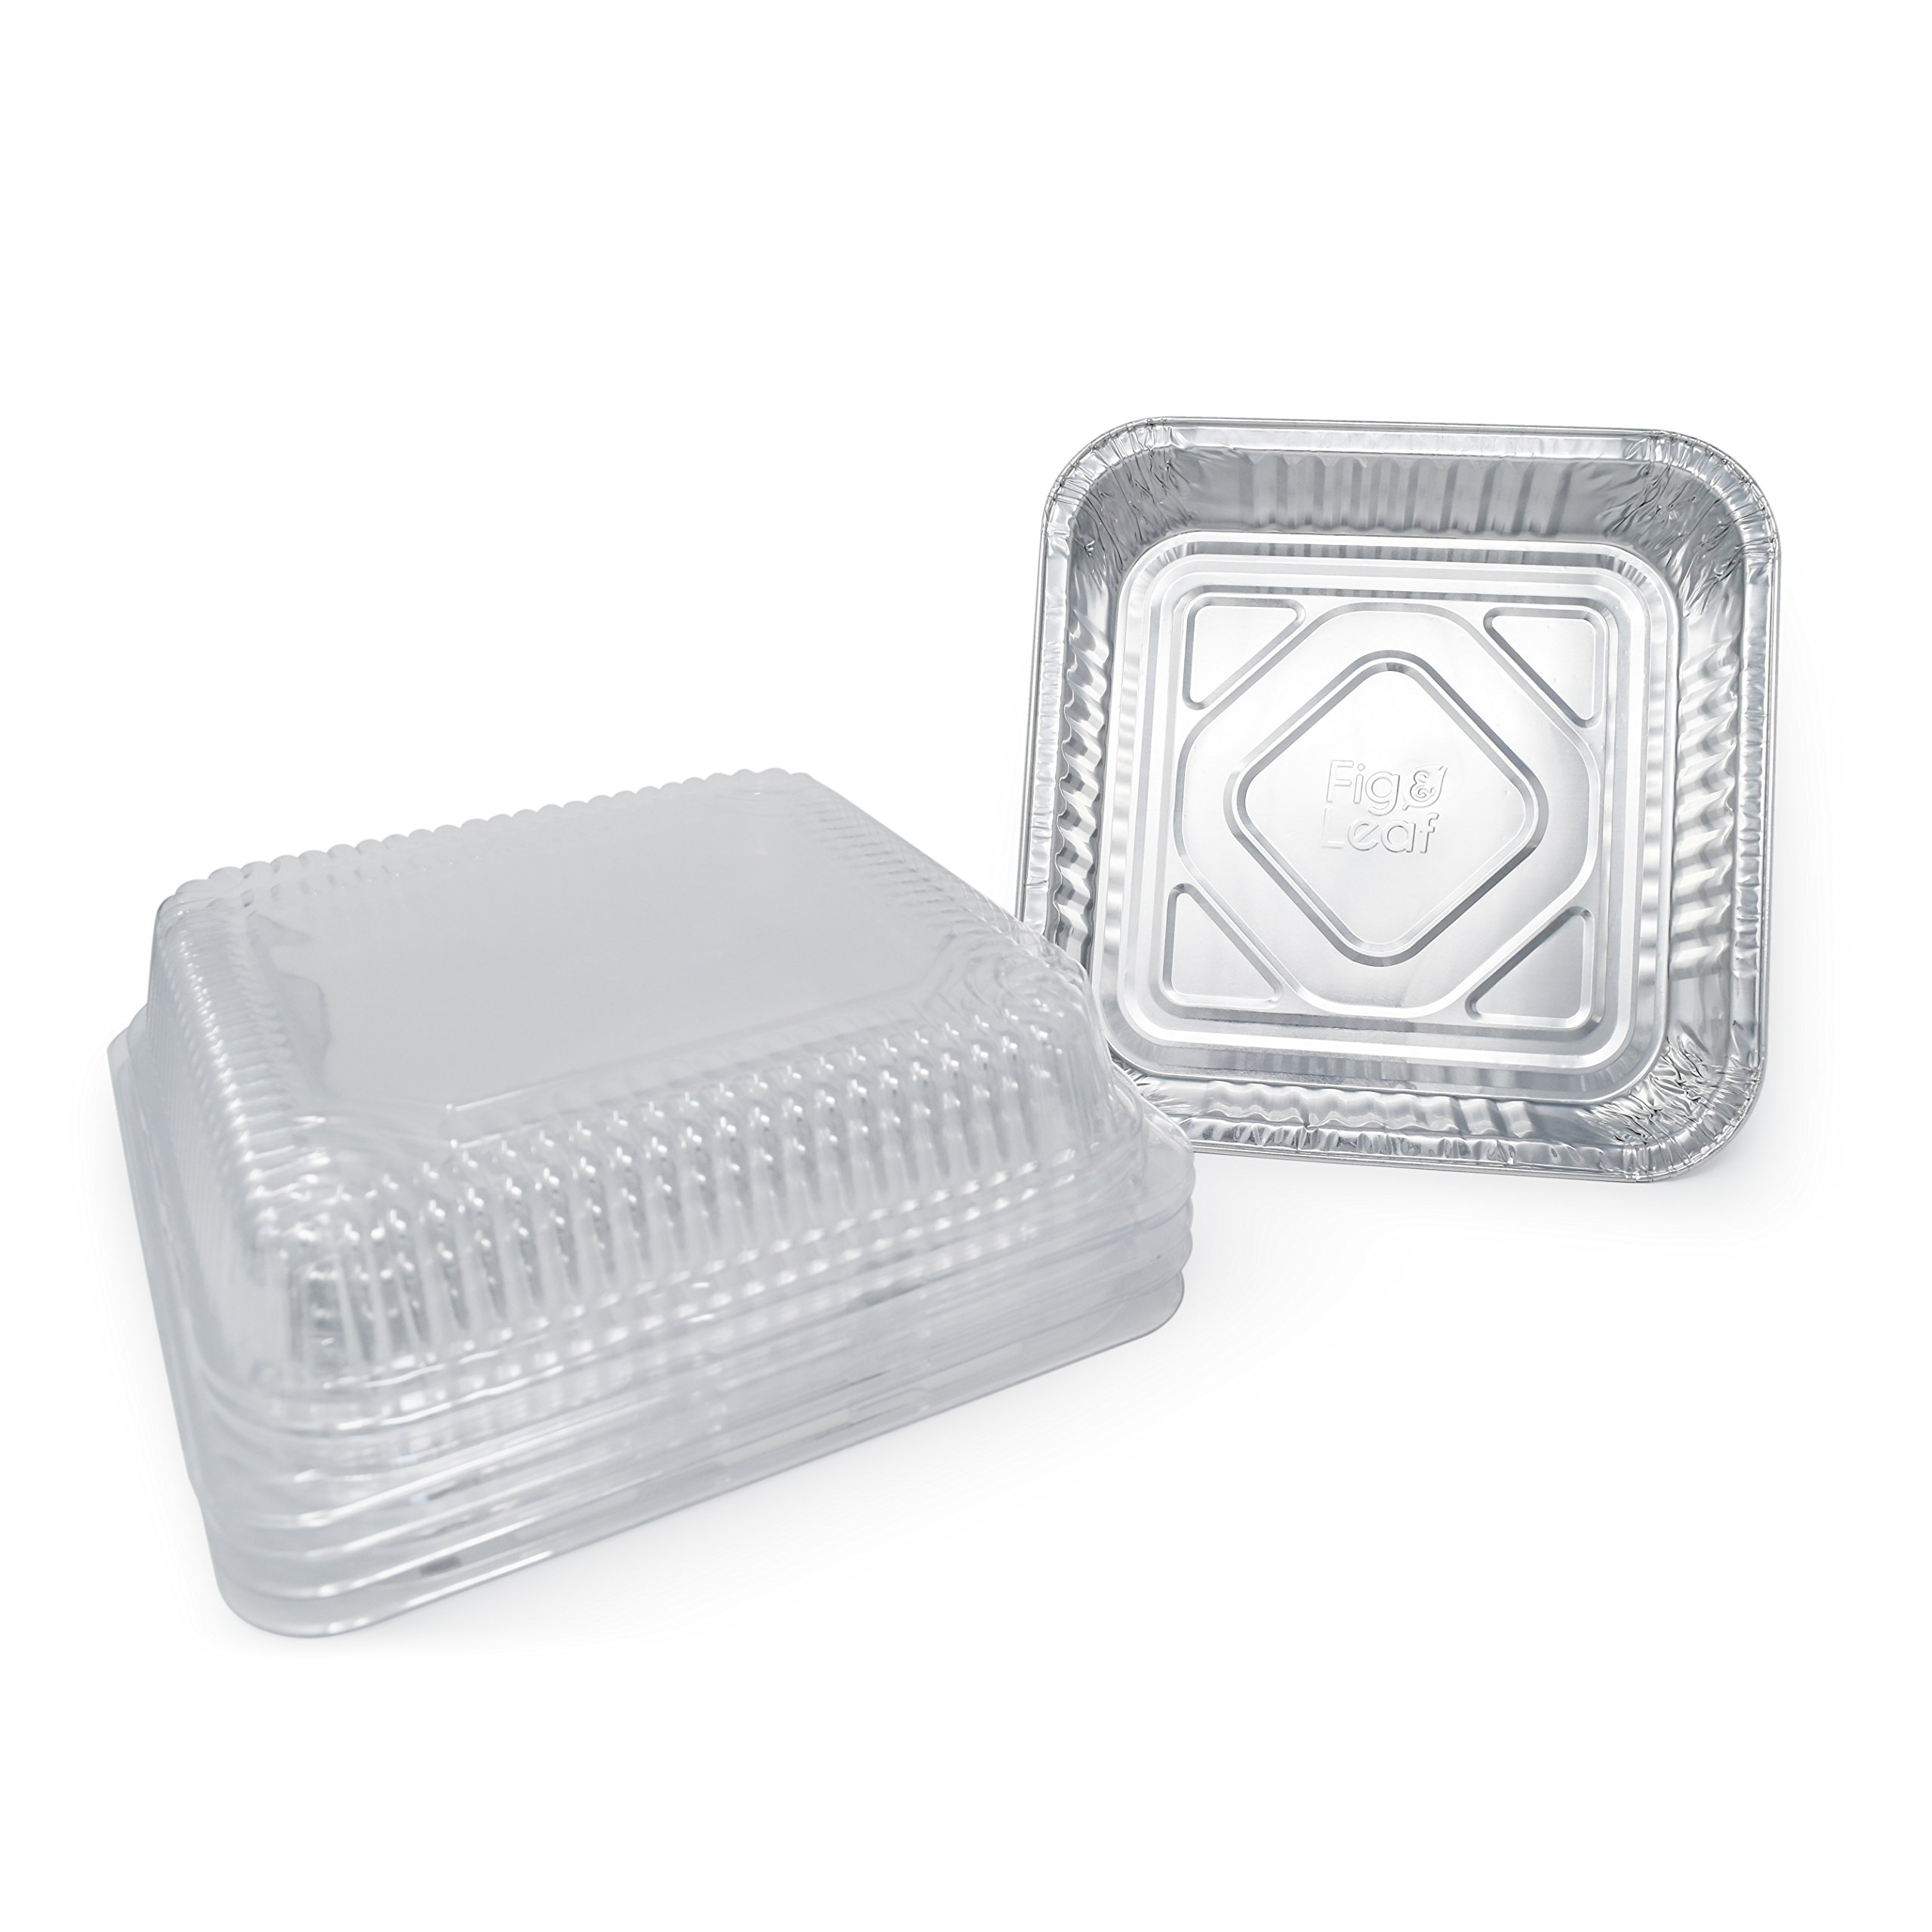 "(210 Pack) Square Baking Pans with LIDS | Size 8 x 8 | Disposable Aluminum Foil Tins with 2"" High Wall l Top Baker's Choice"